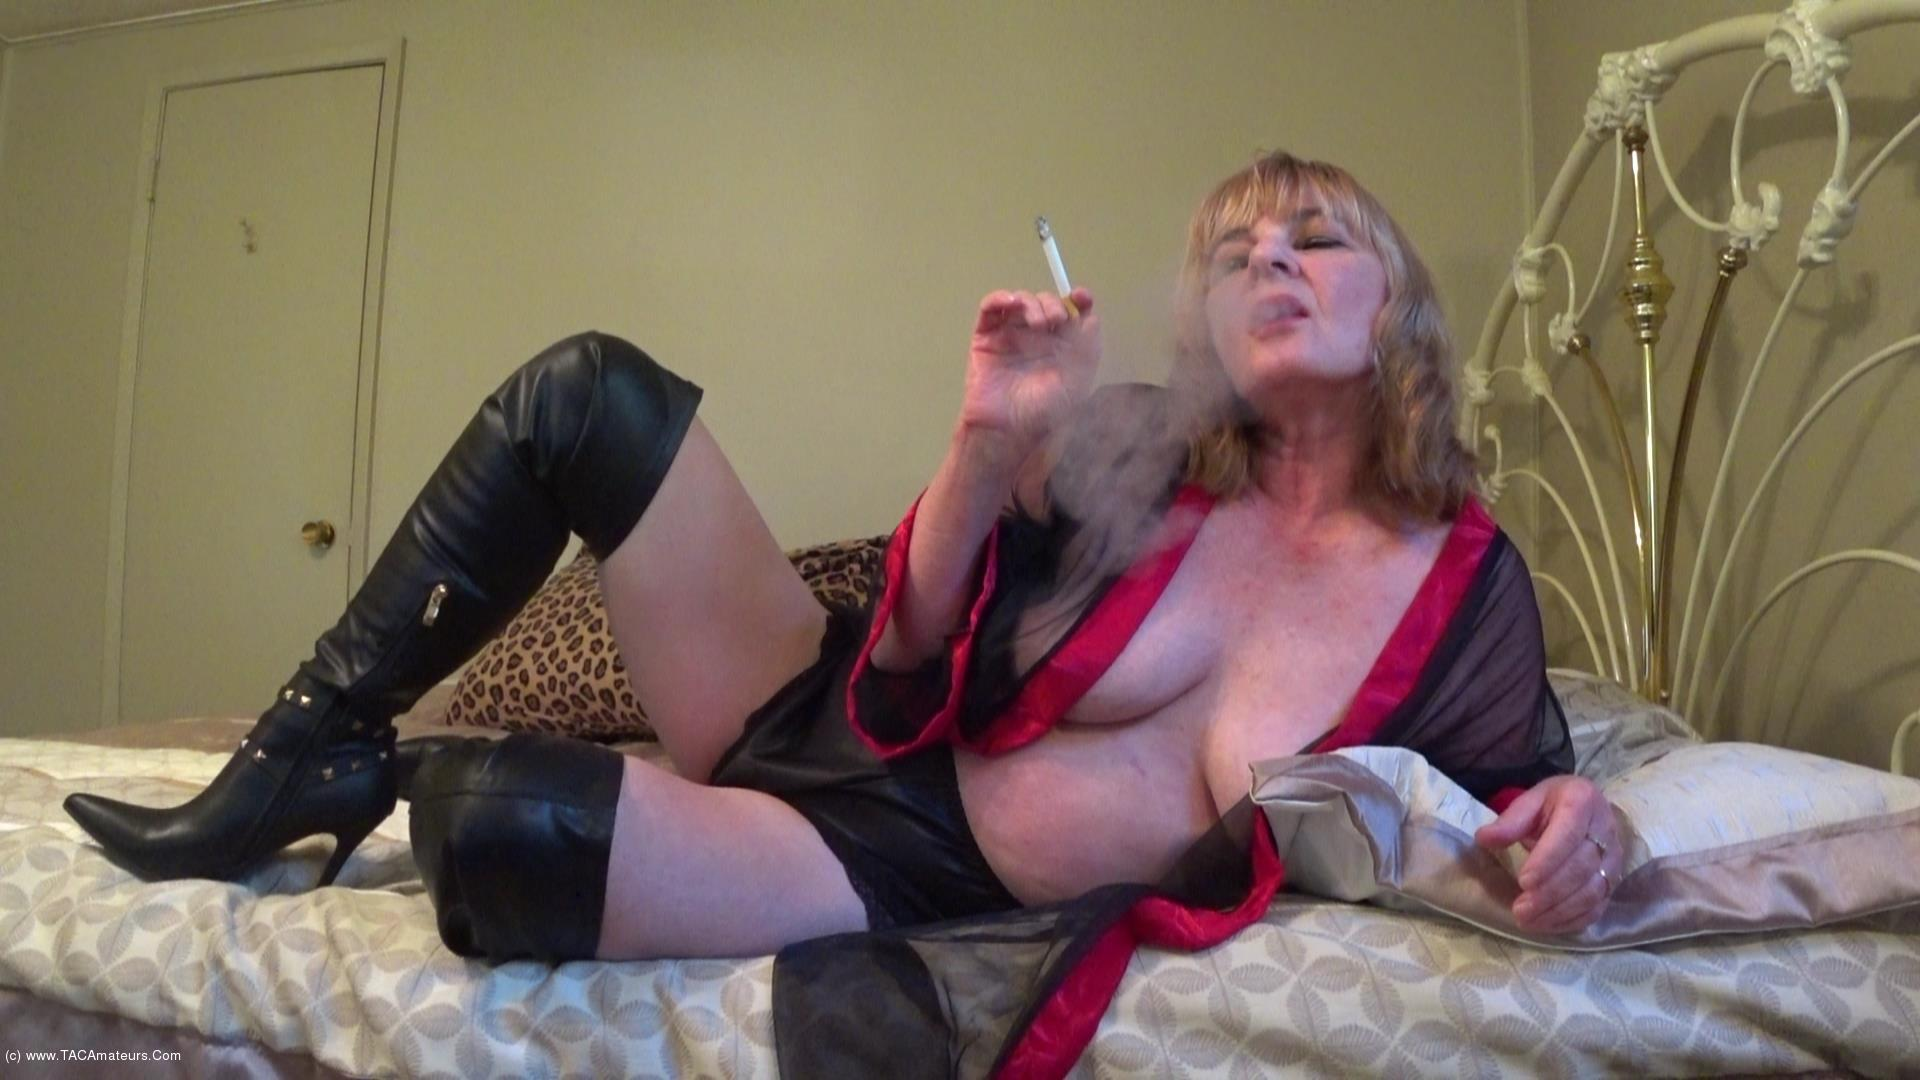 CougarBabeJolee - In Lingerie & Boots, Smoking While You Stroke scene 0